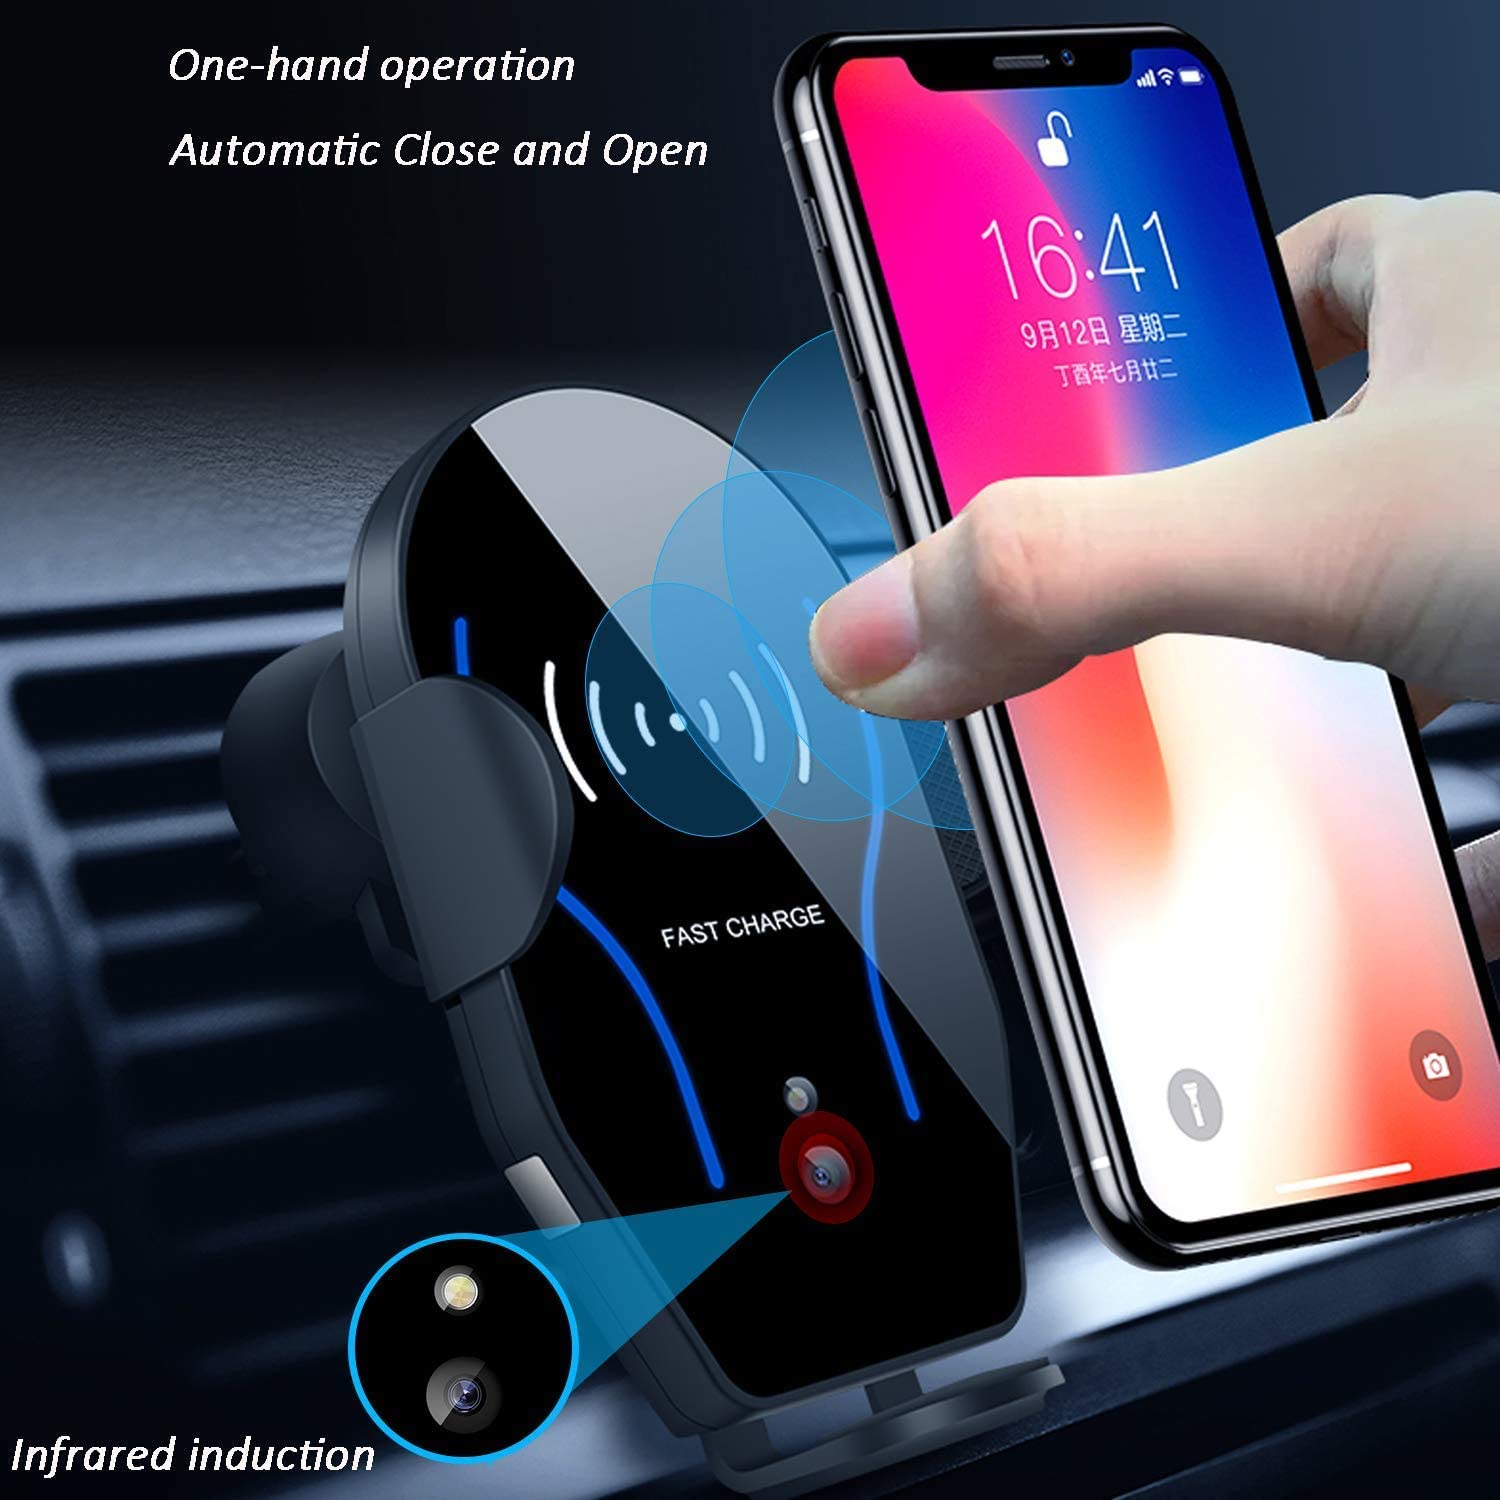 Wireless Charger Car Mount,VIEE Air Vent Automatic Clamping Cell Phone Holder for Car Wireless Charger Compatible with iPhone Xs Max XR XS X Samsung Galaxy S10 S9 S8 S7 Edge Note9